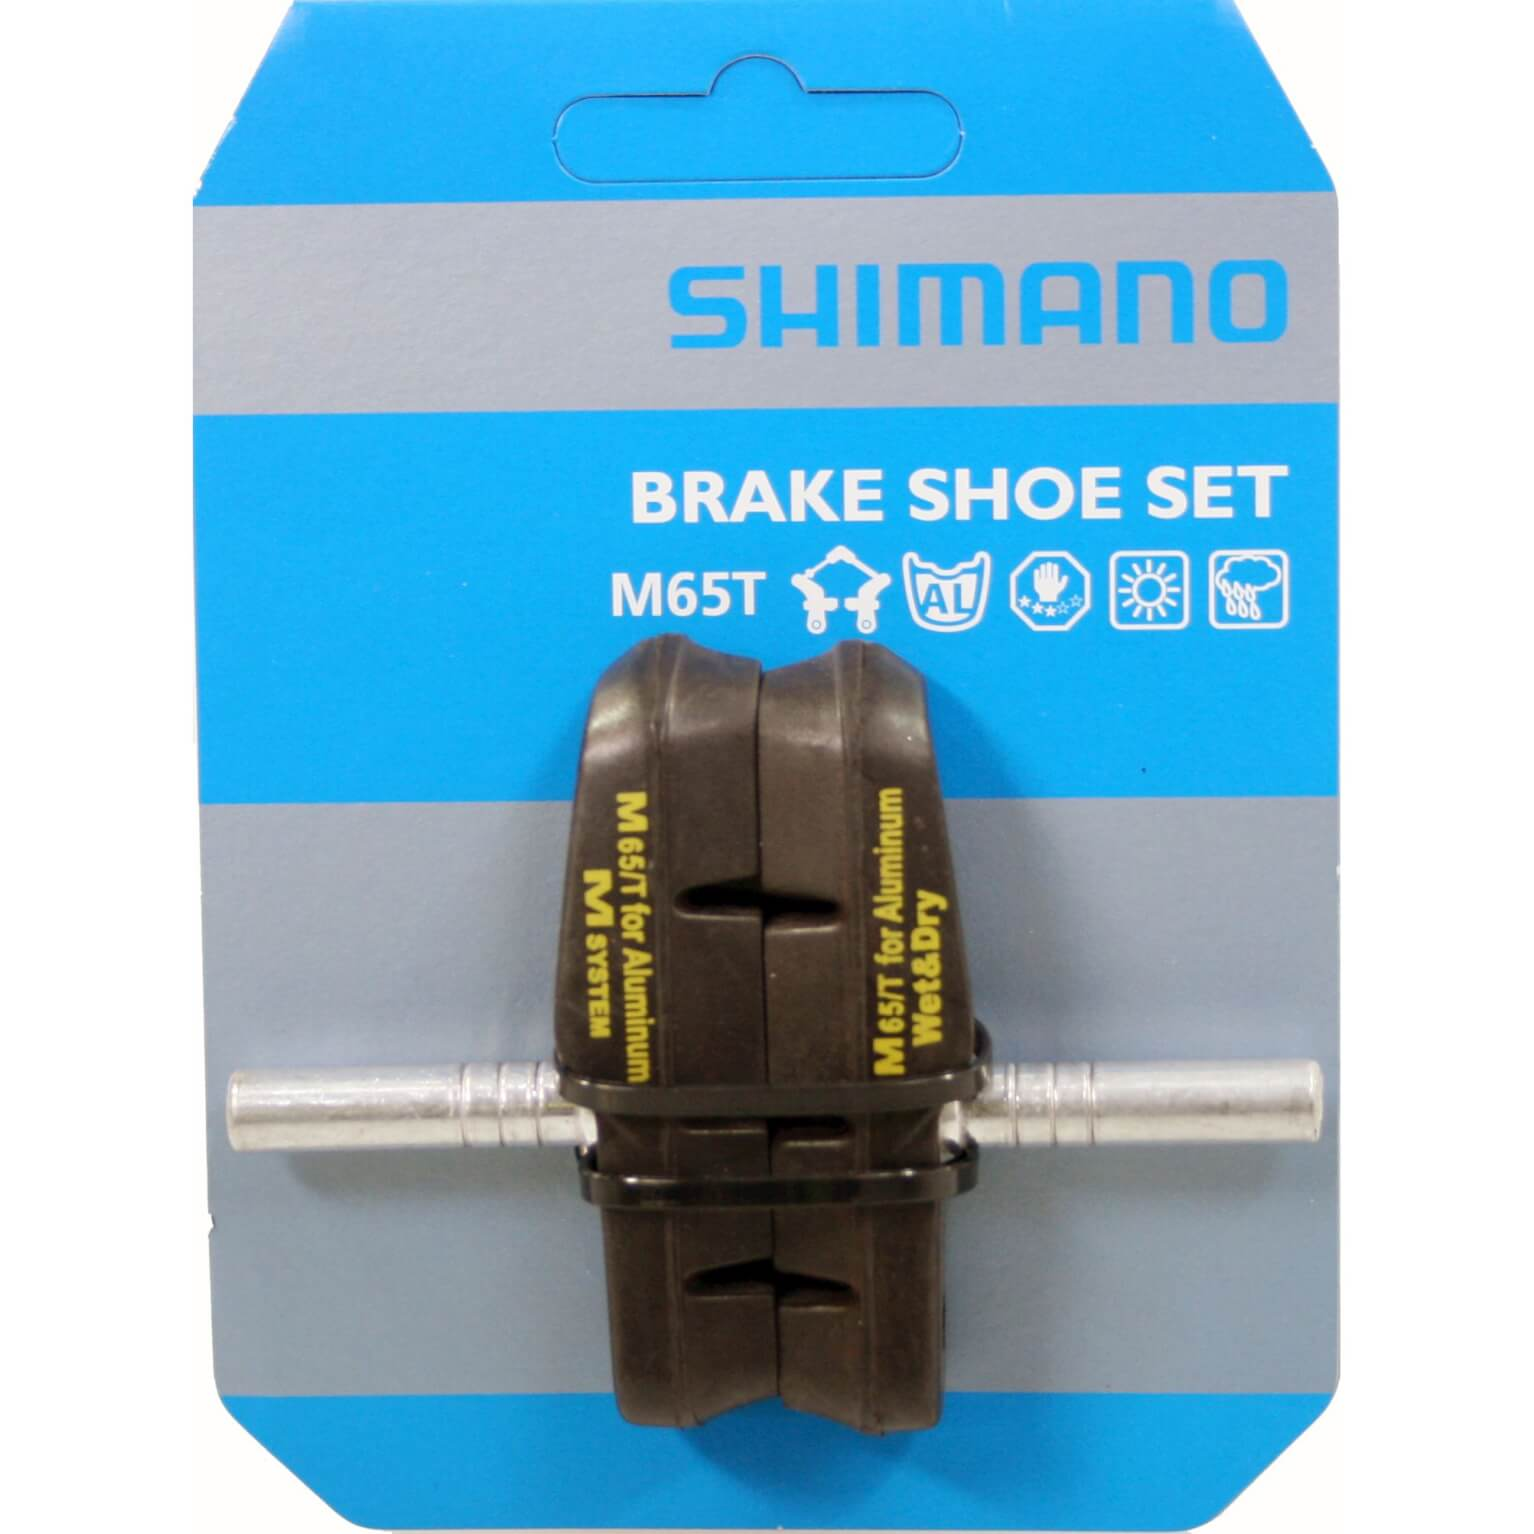 Shimano Brake Pad Set Cantilever M65t (2Pieces)